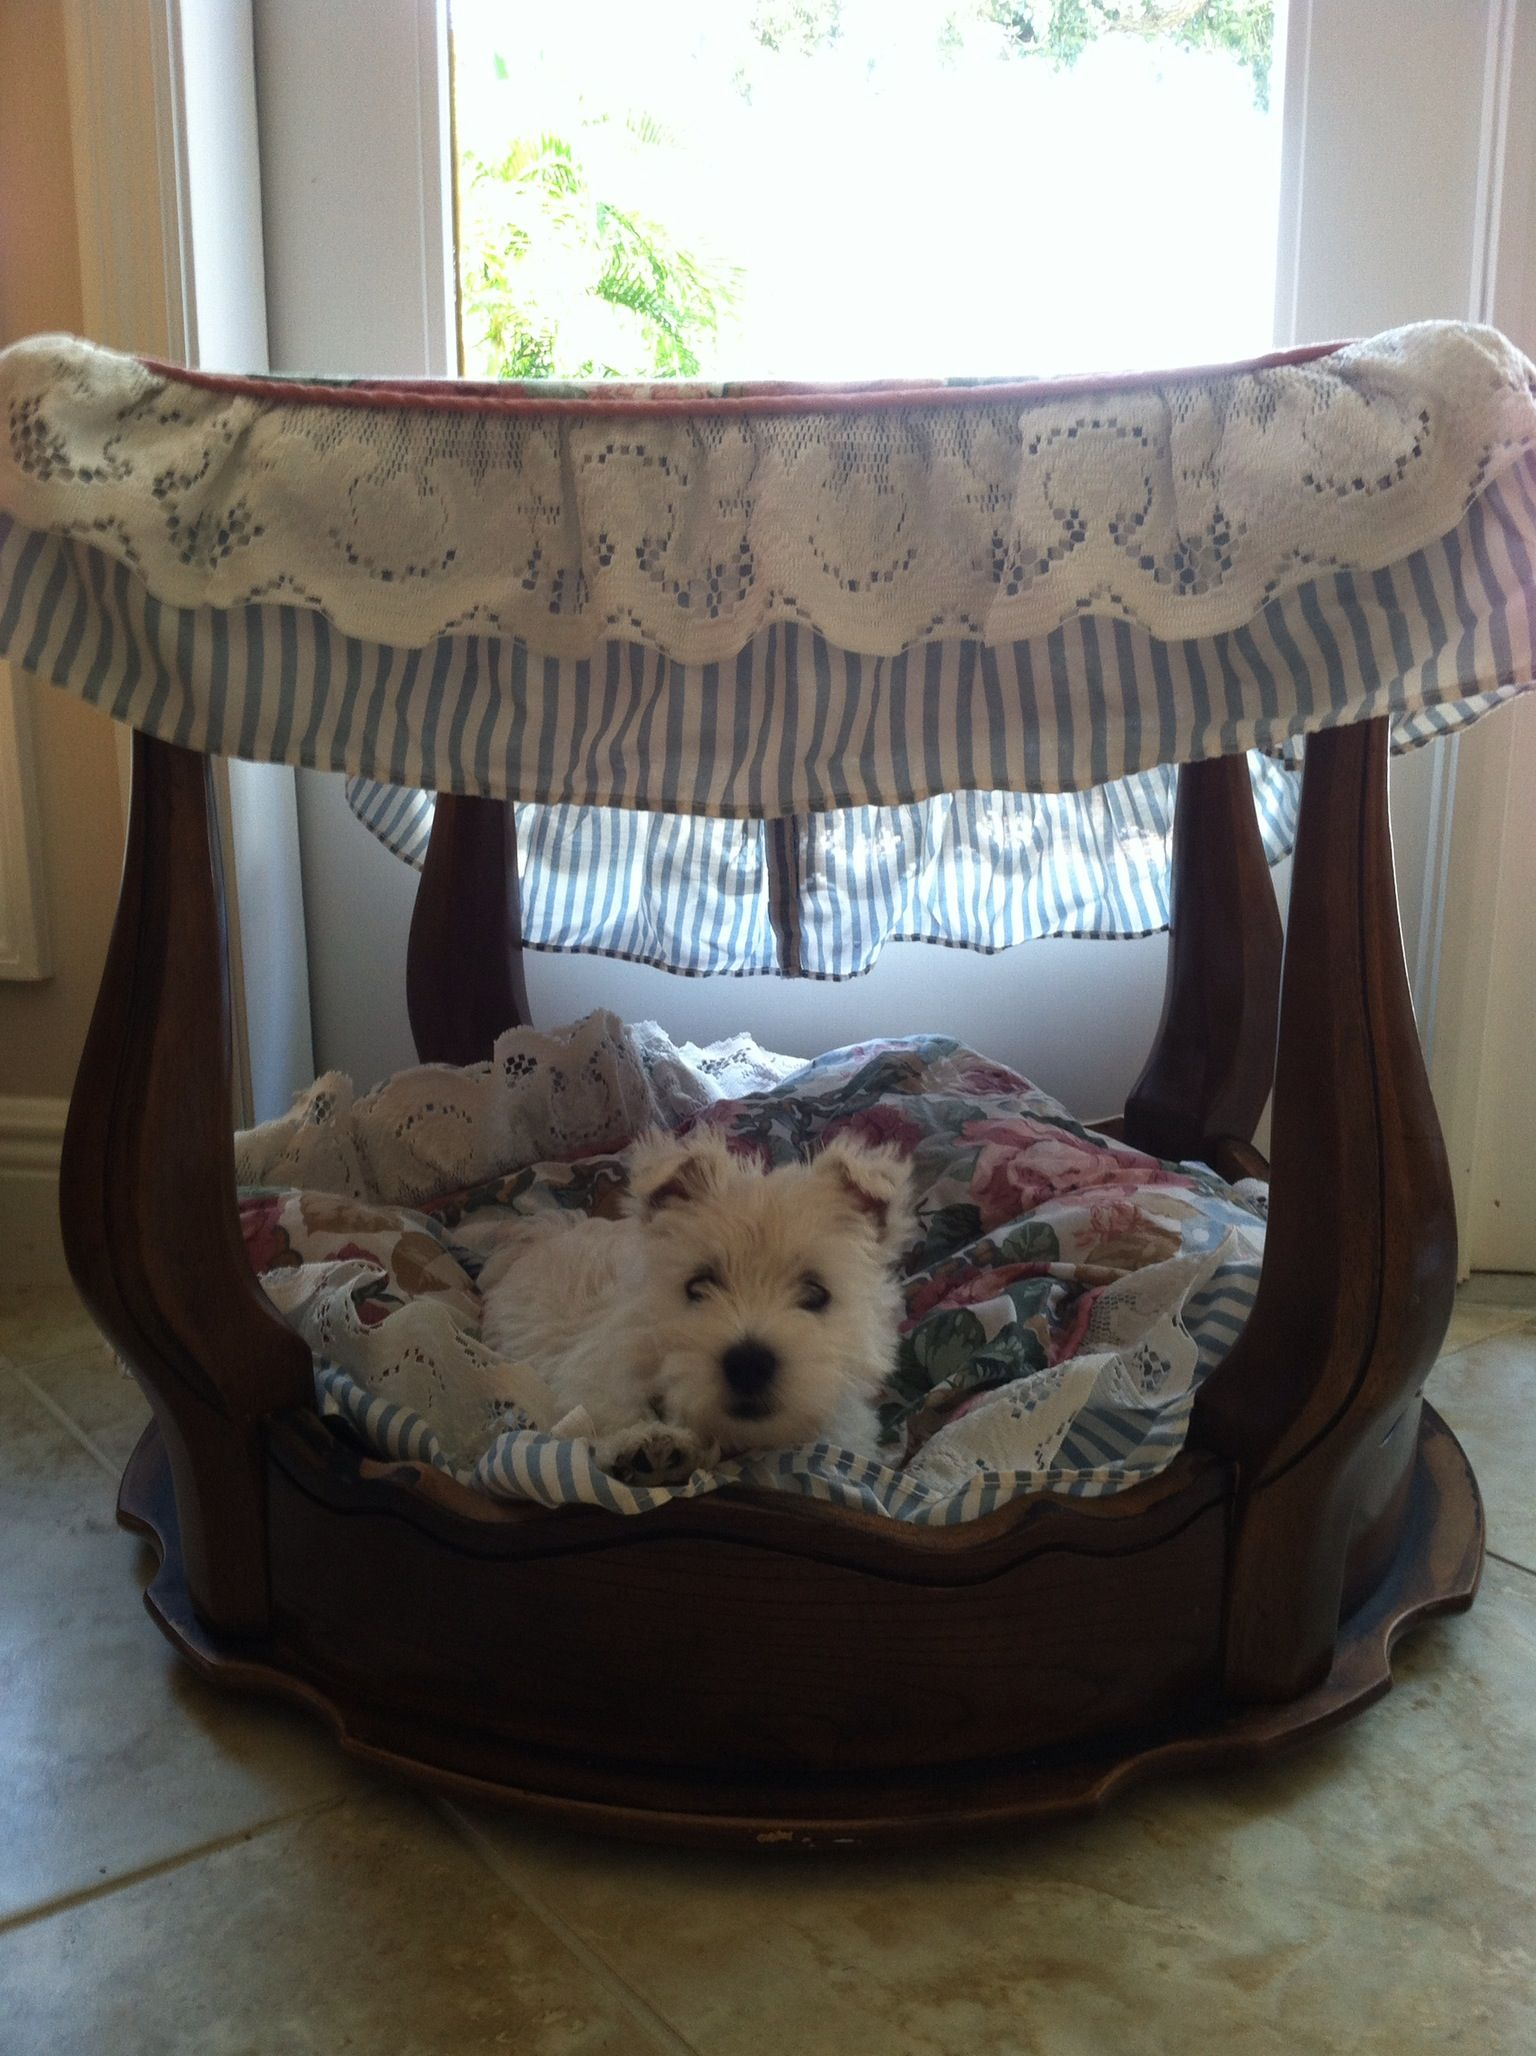 How to Turn Old End Table into Wood Pet Bed diy repurpose